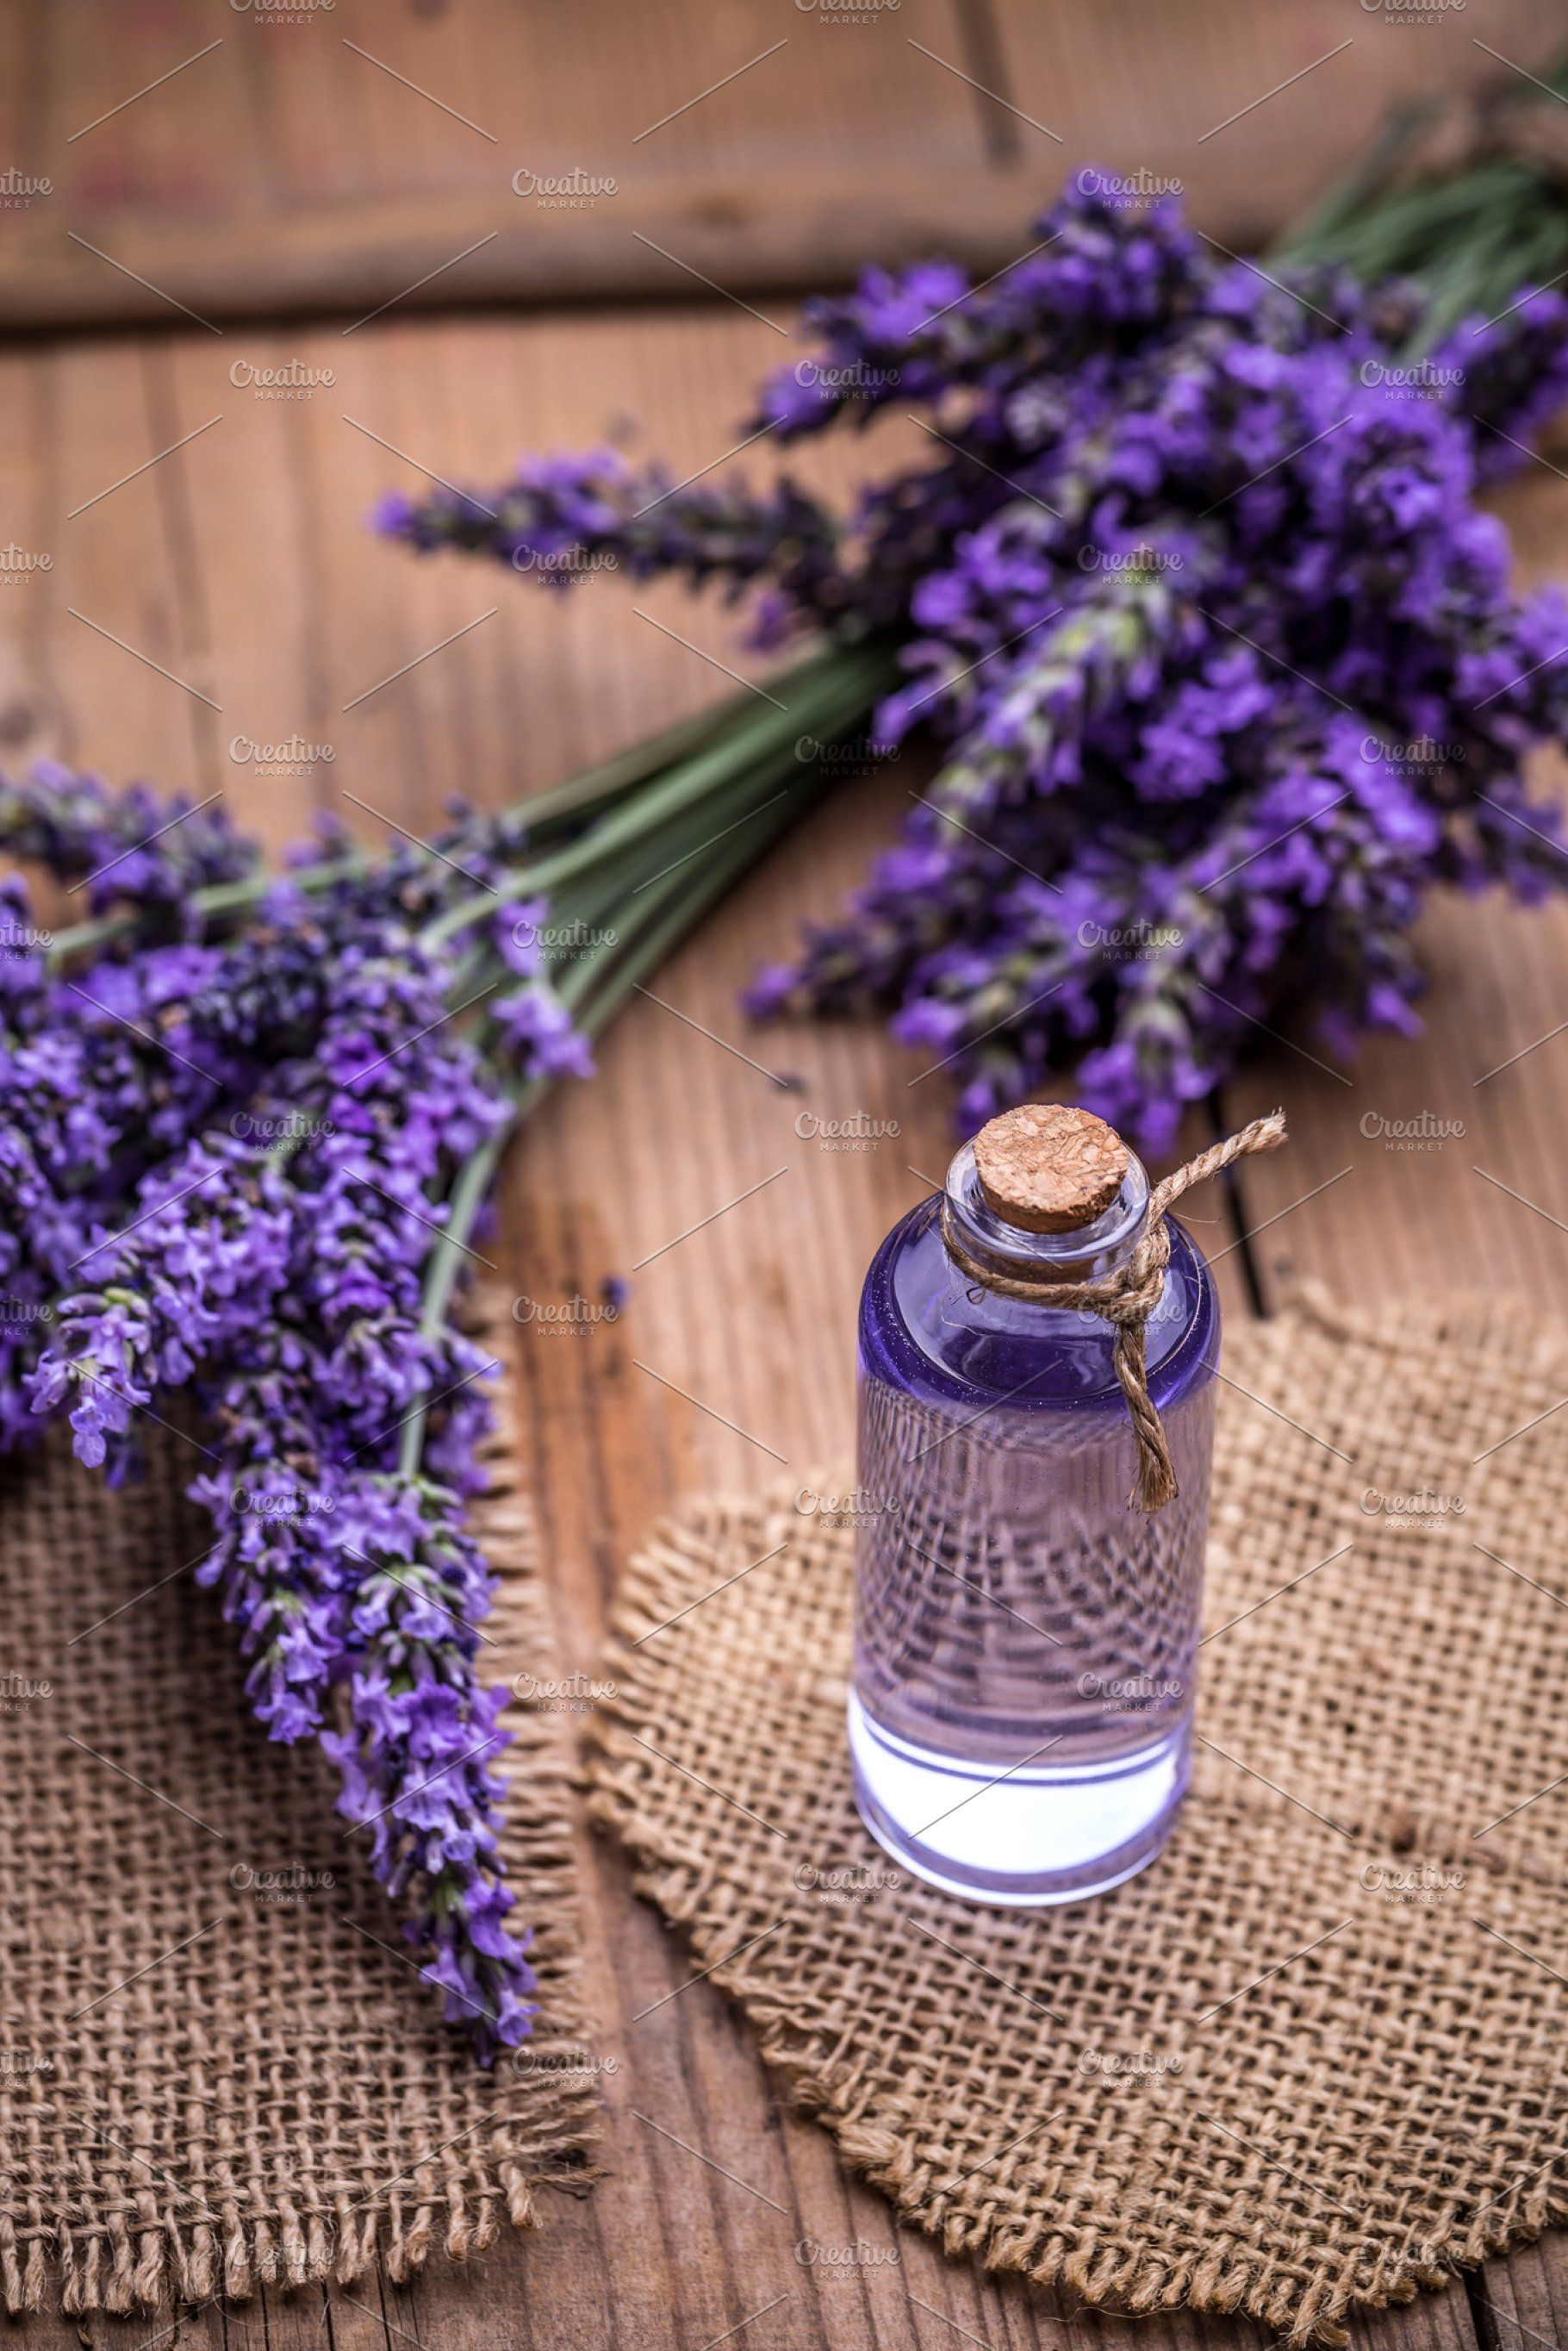 Aromatherapy Oil Lavender Spa Lavender Flowers Beautiful Flowers